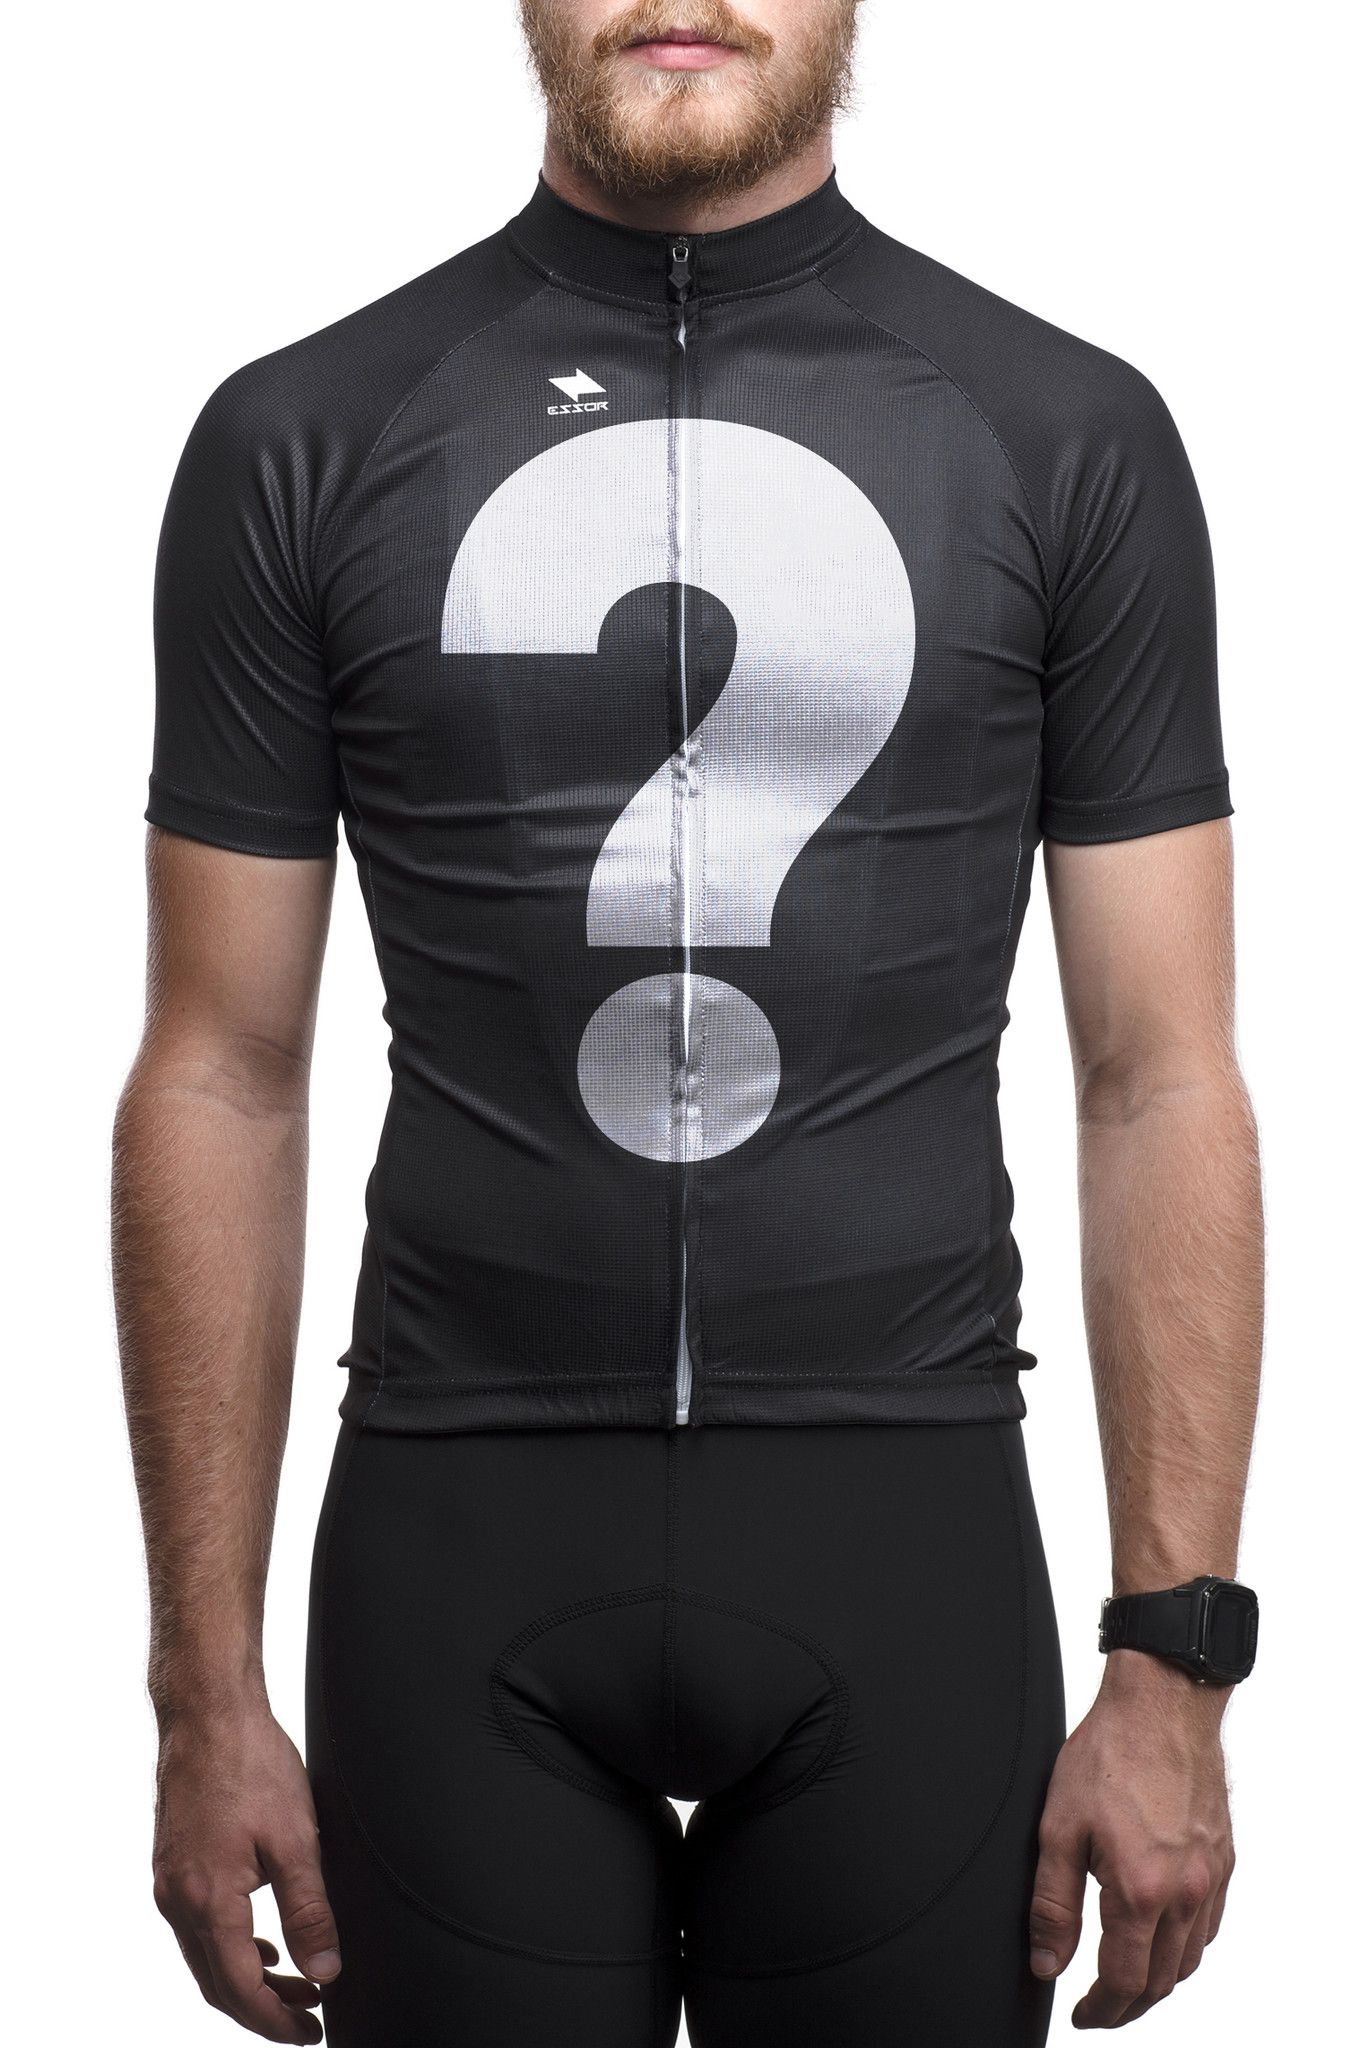 Rider Signature Series - Jersey + Bottle - Monthly Subscription Cycling Bib  Shorts fd076911a